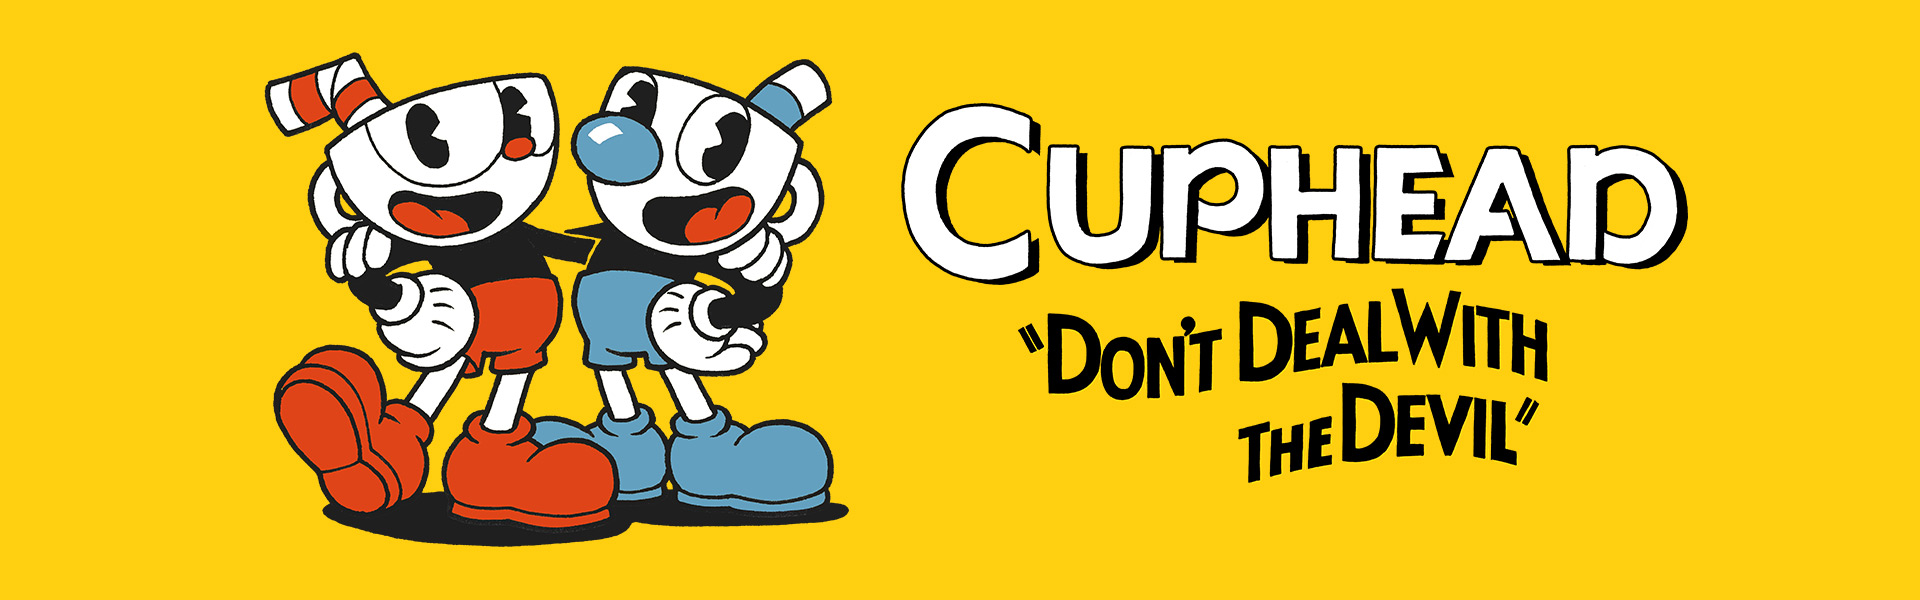 cuphead,Don't Deal with the Devil,cuphead mugman 和 chalice 小姐角色擺姿勢